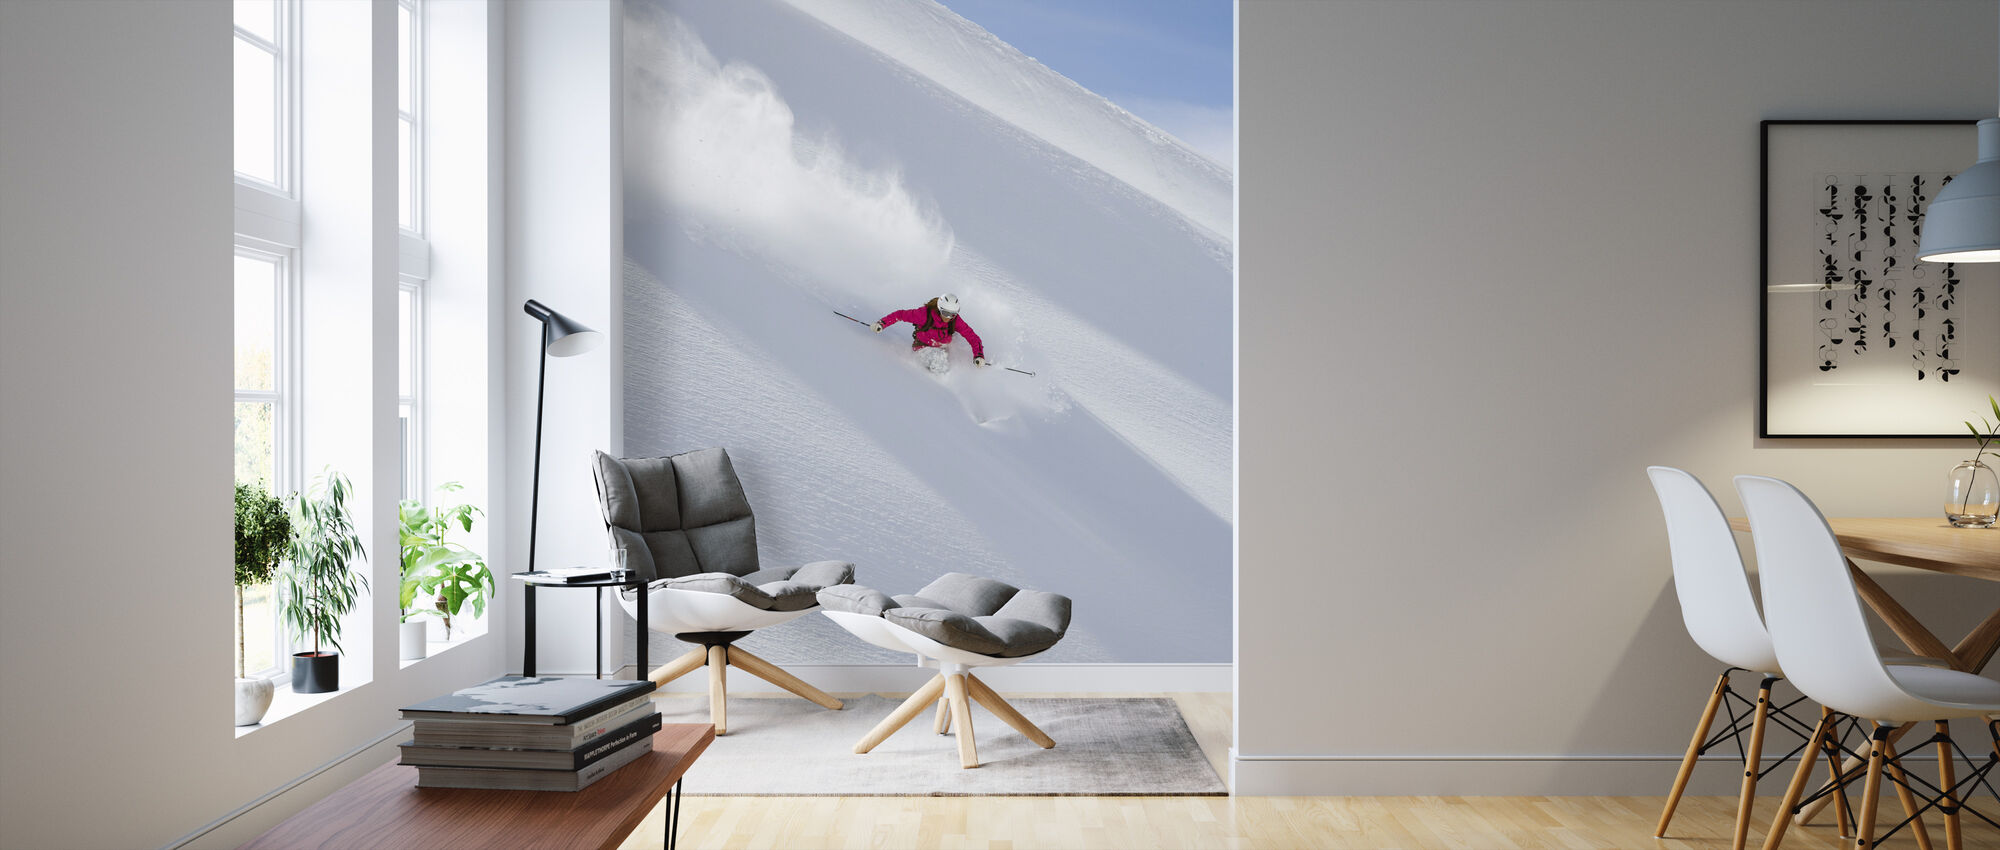 Skiing in Chamonix, France - Wallpaper - Living Room